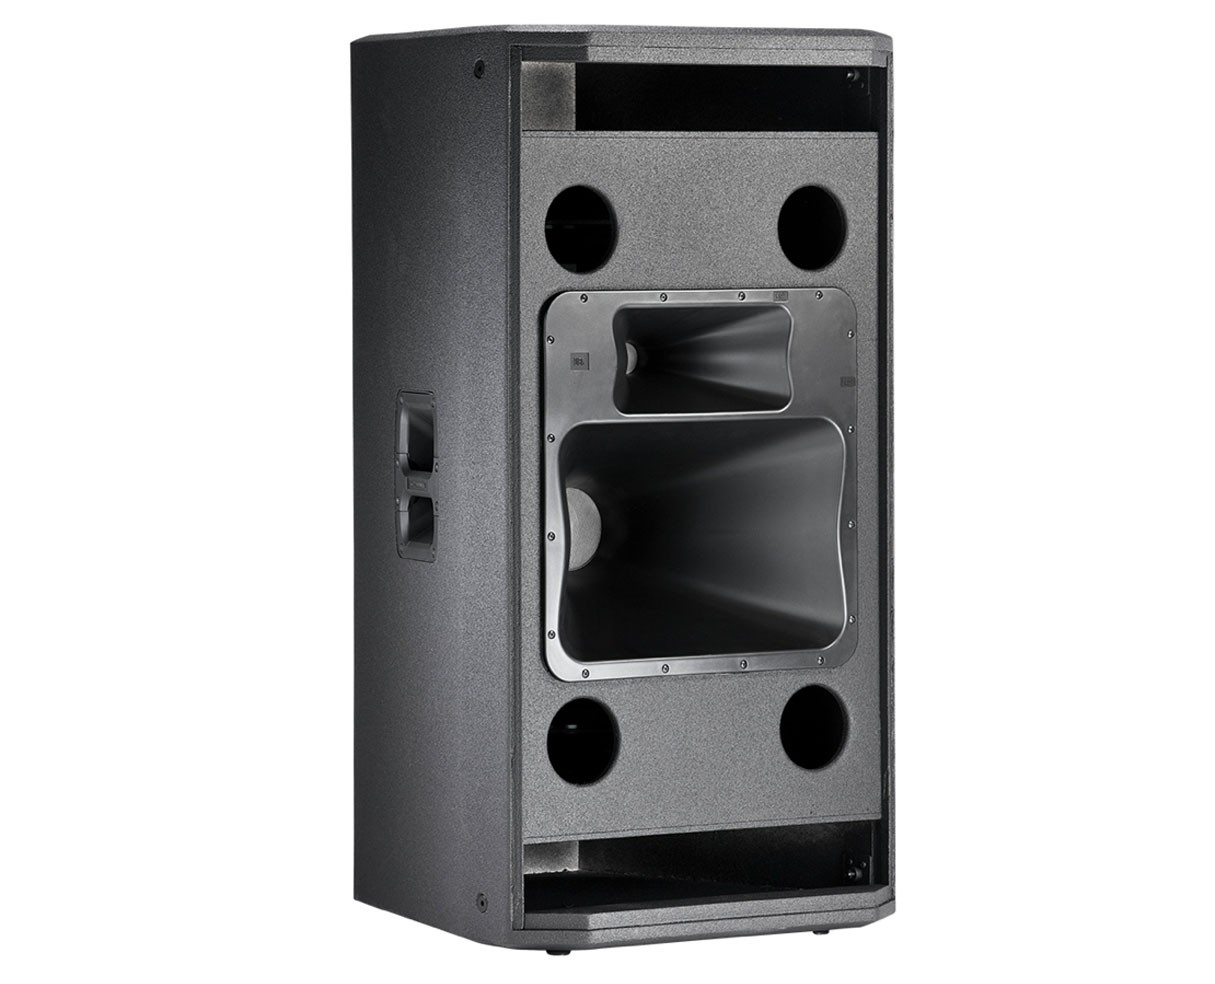 jbl stx835 dual 15 inch 3 way passive speaker cabinet agiprodj. Black Bedroom Furniture Sets. Home Design Ideas